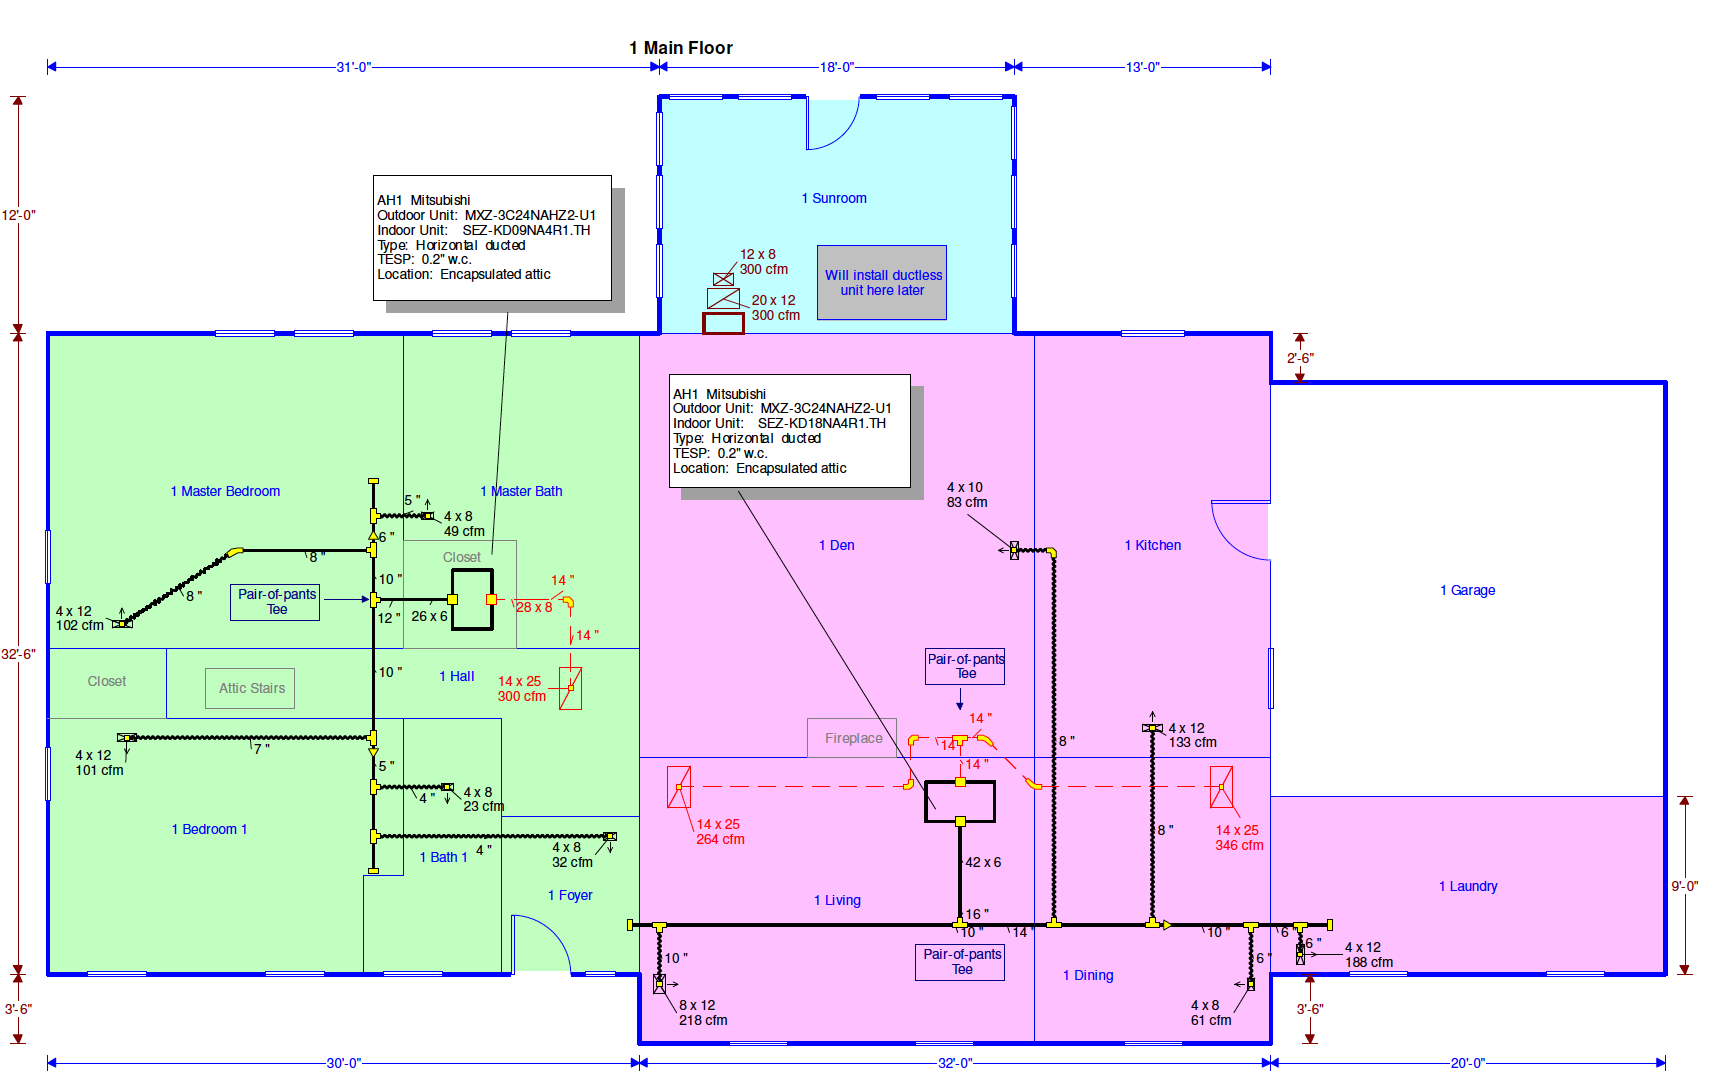 Bailes residence duct plan for Mitsubishi ducted mini-split heat pump with two air handlers